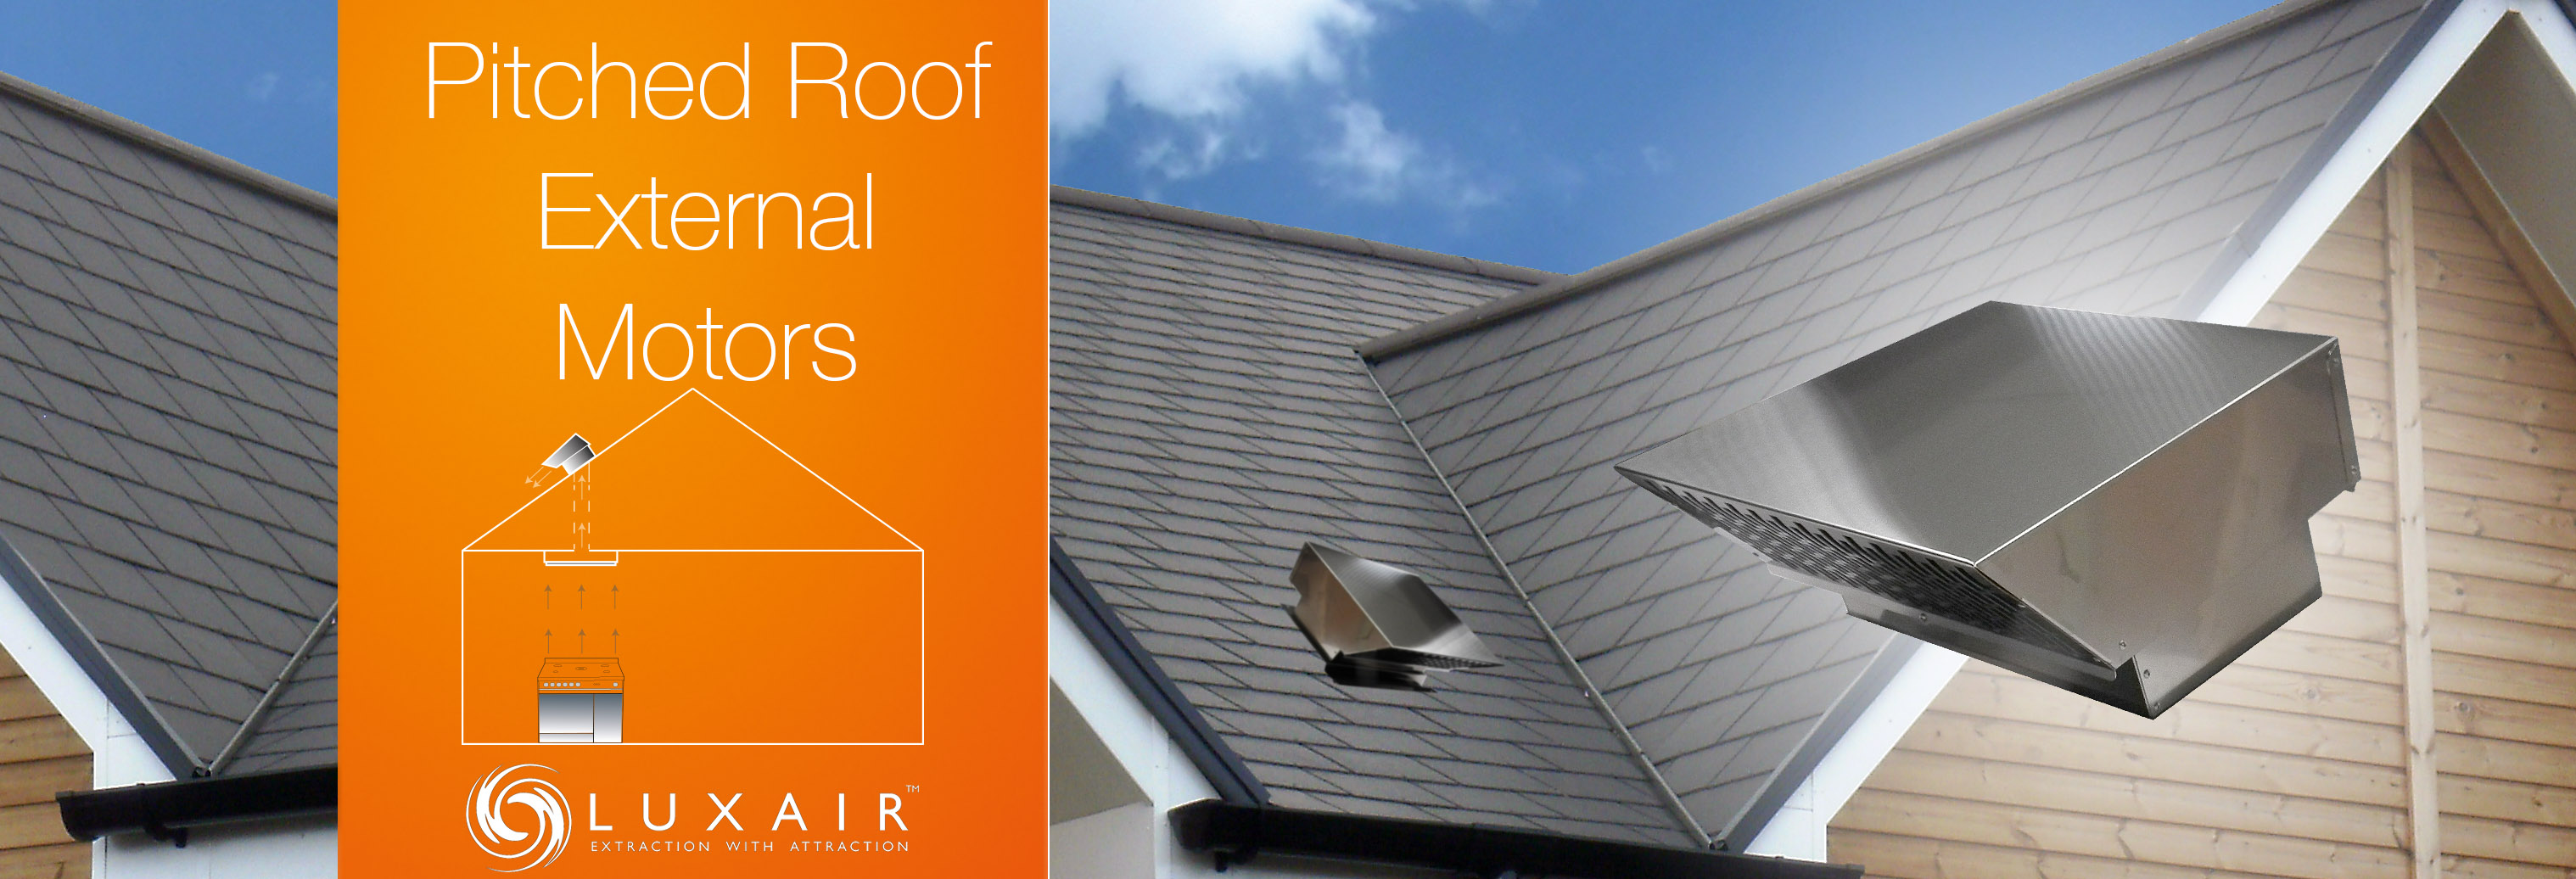 Pitched roof external outside motor for cooker hoods